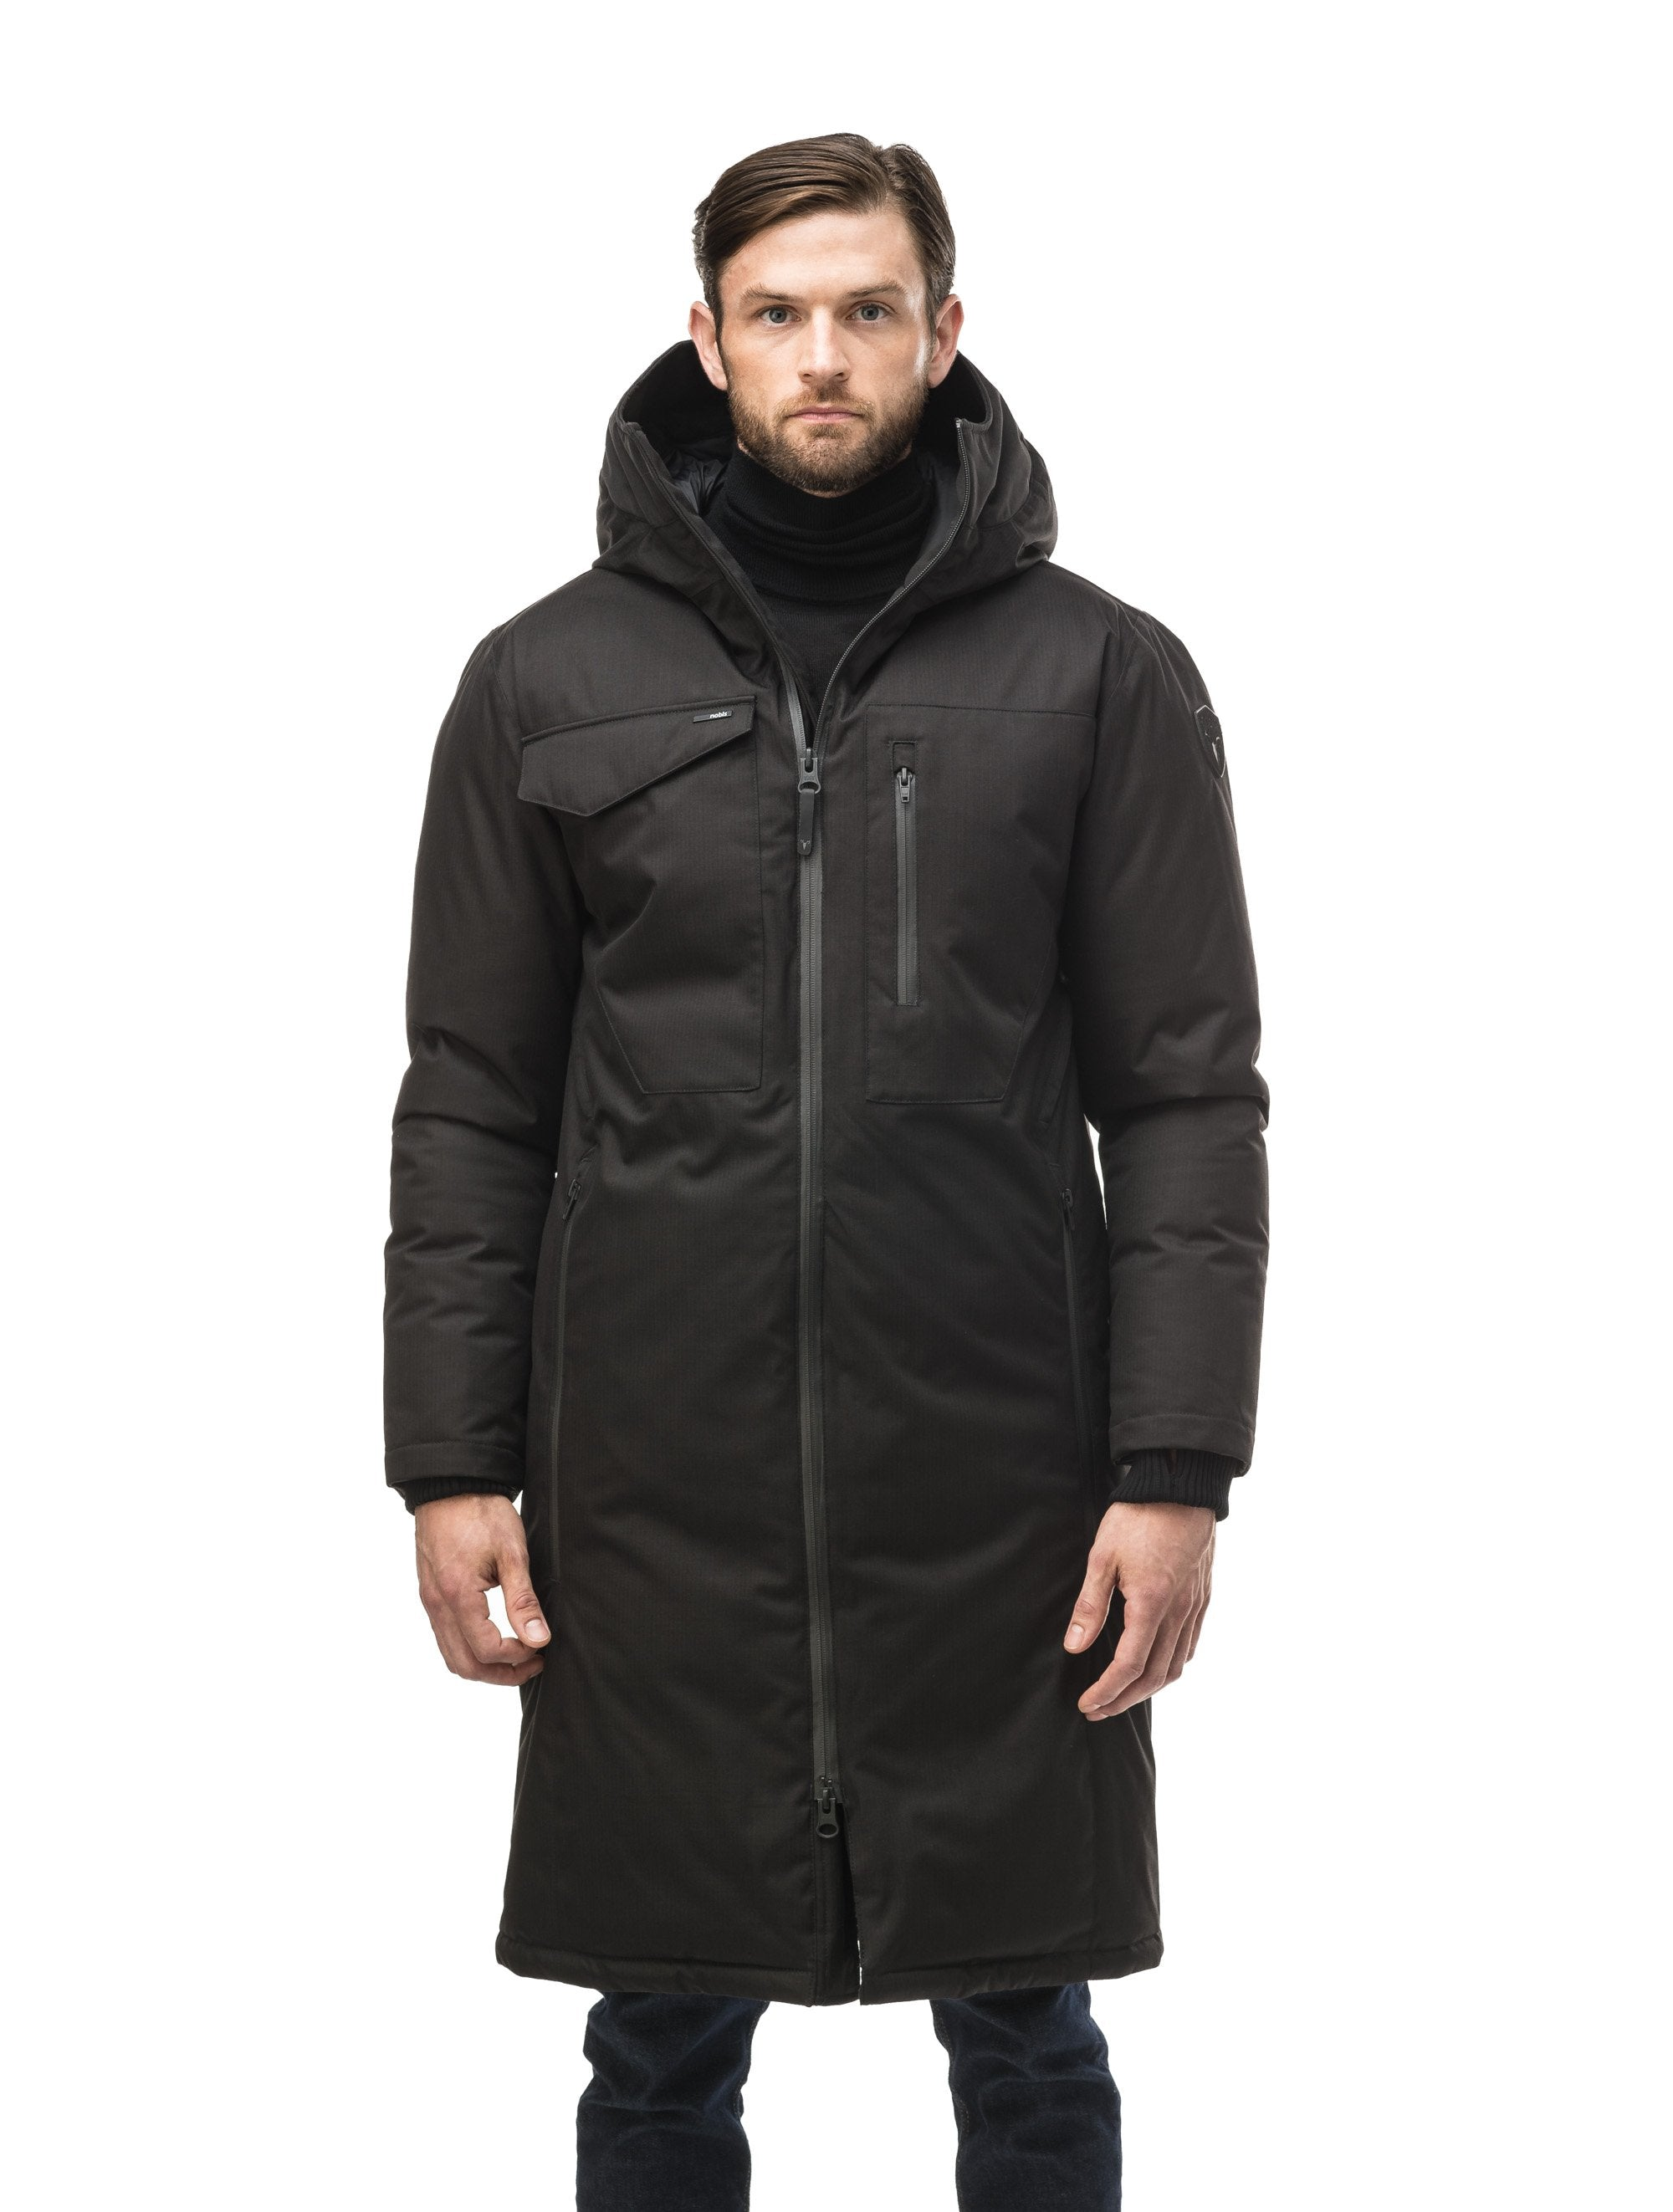 Long men's calf length parka with down fill and exposed zipper that features spacious pockets and zippered vents in Black | color